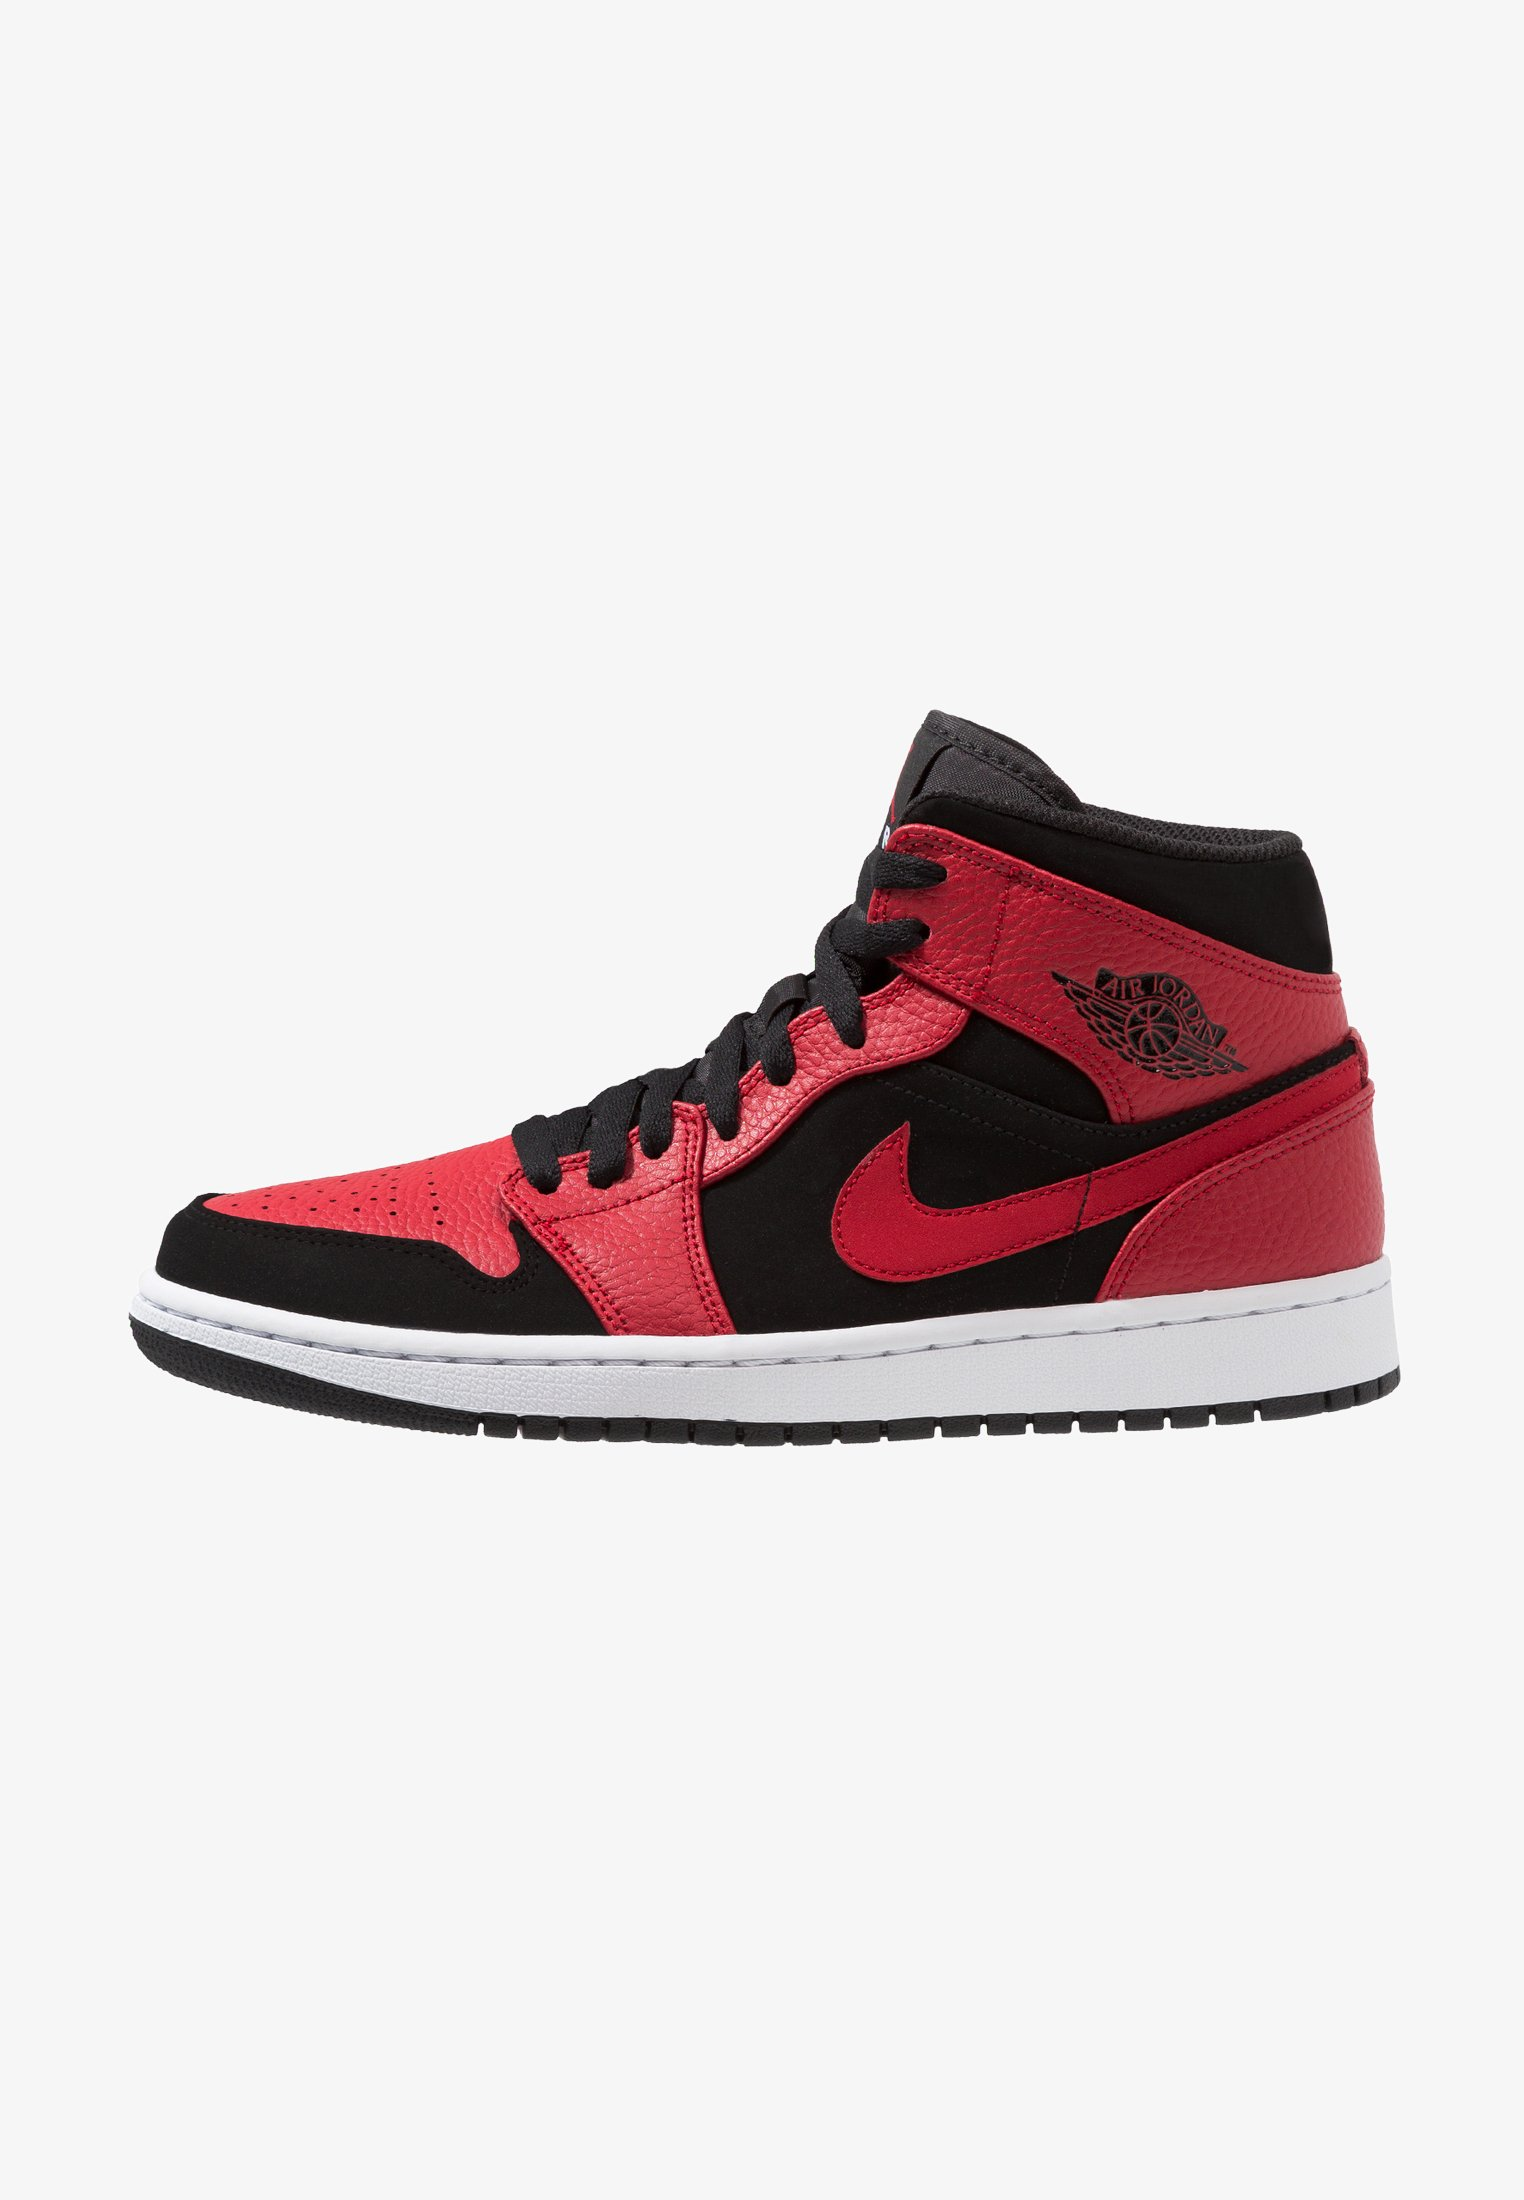 inoxidable humor Poner  Jordan AIR 1 MID - Zapatillas altas - black/white/gym red/negro - Zalando.es